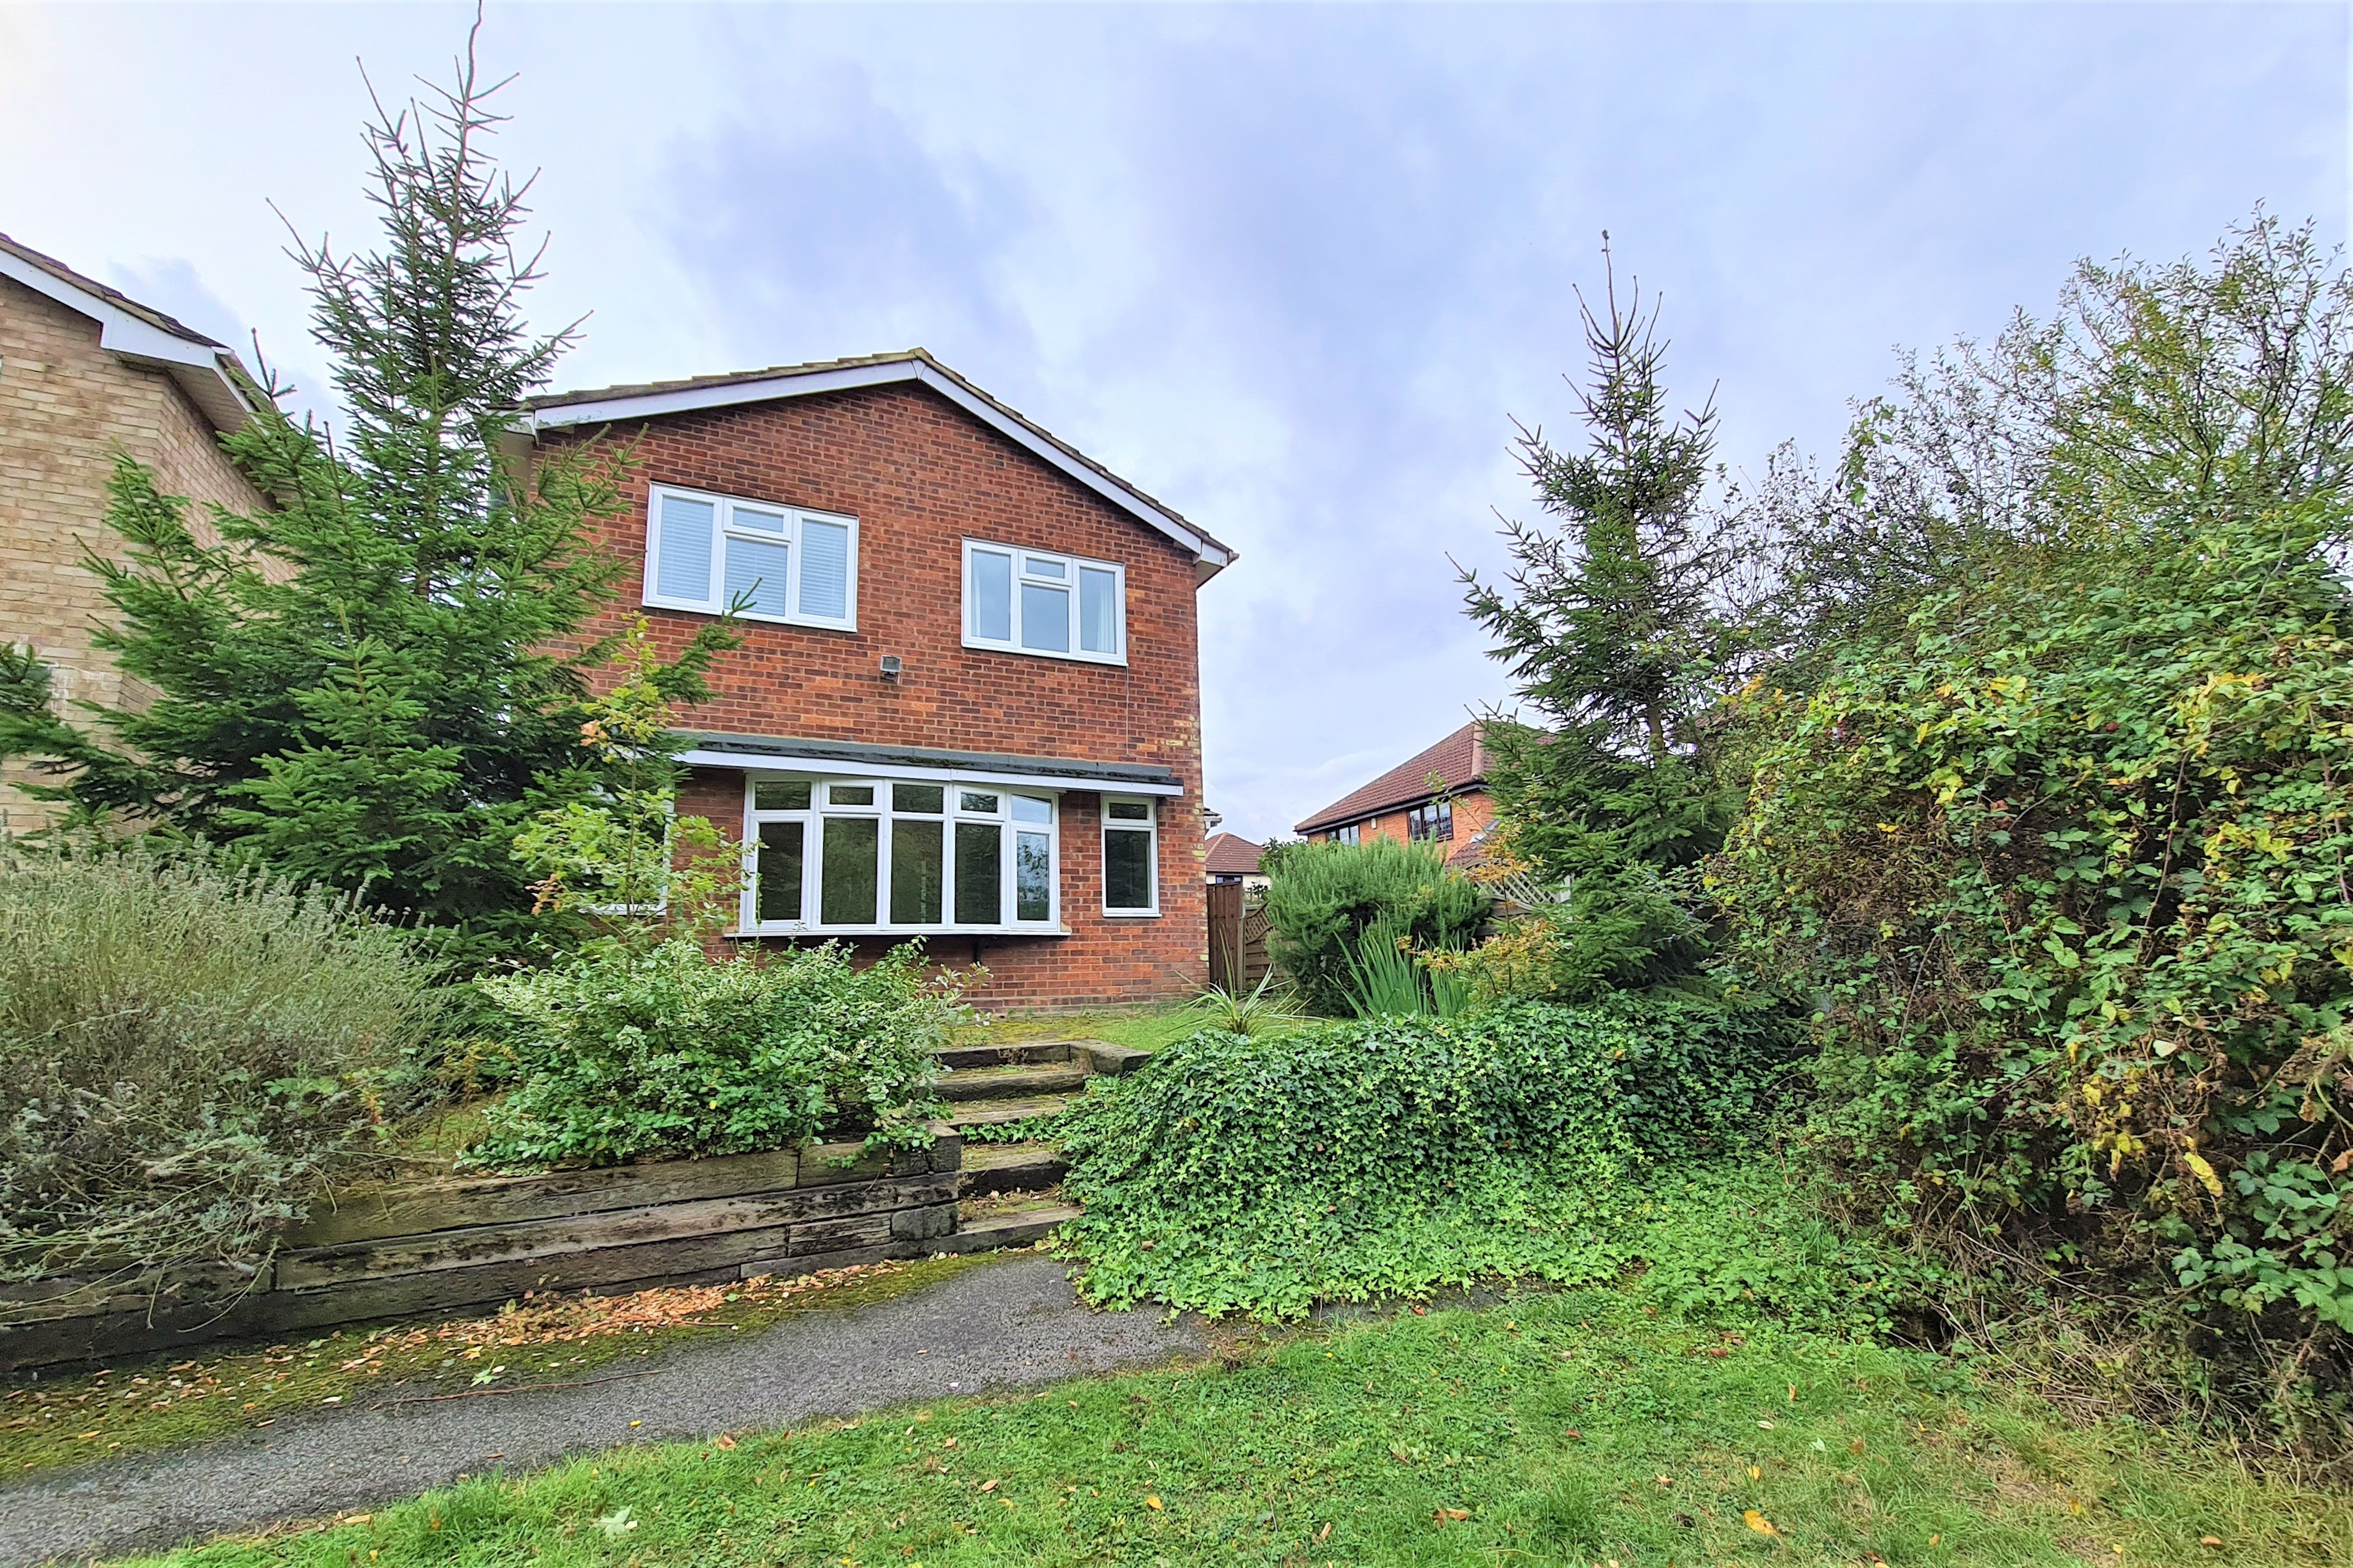 4 bed house for sale in Lilyville Walk, Rayleigh  - Property Image 1